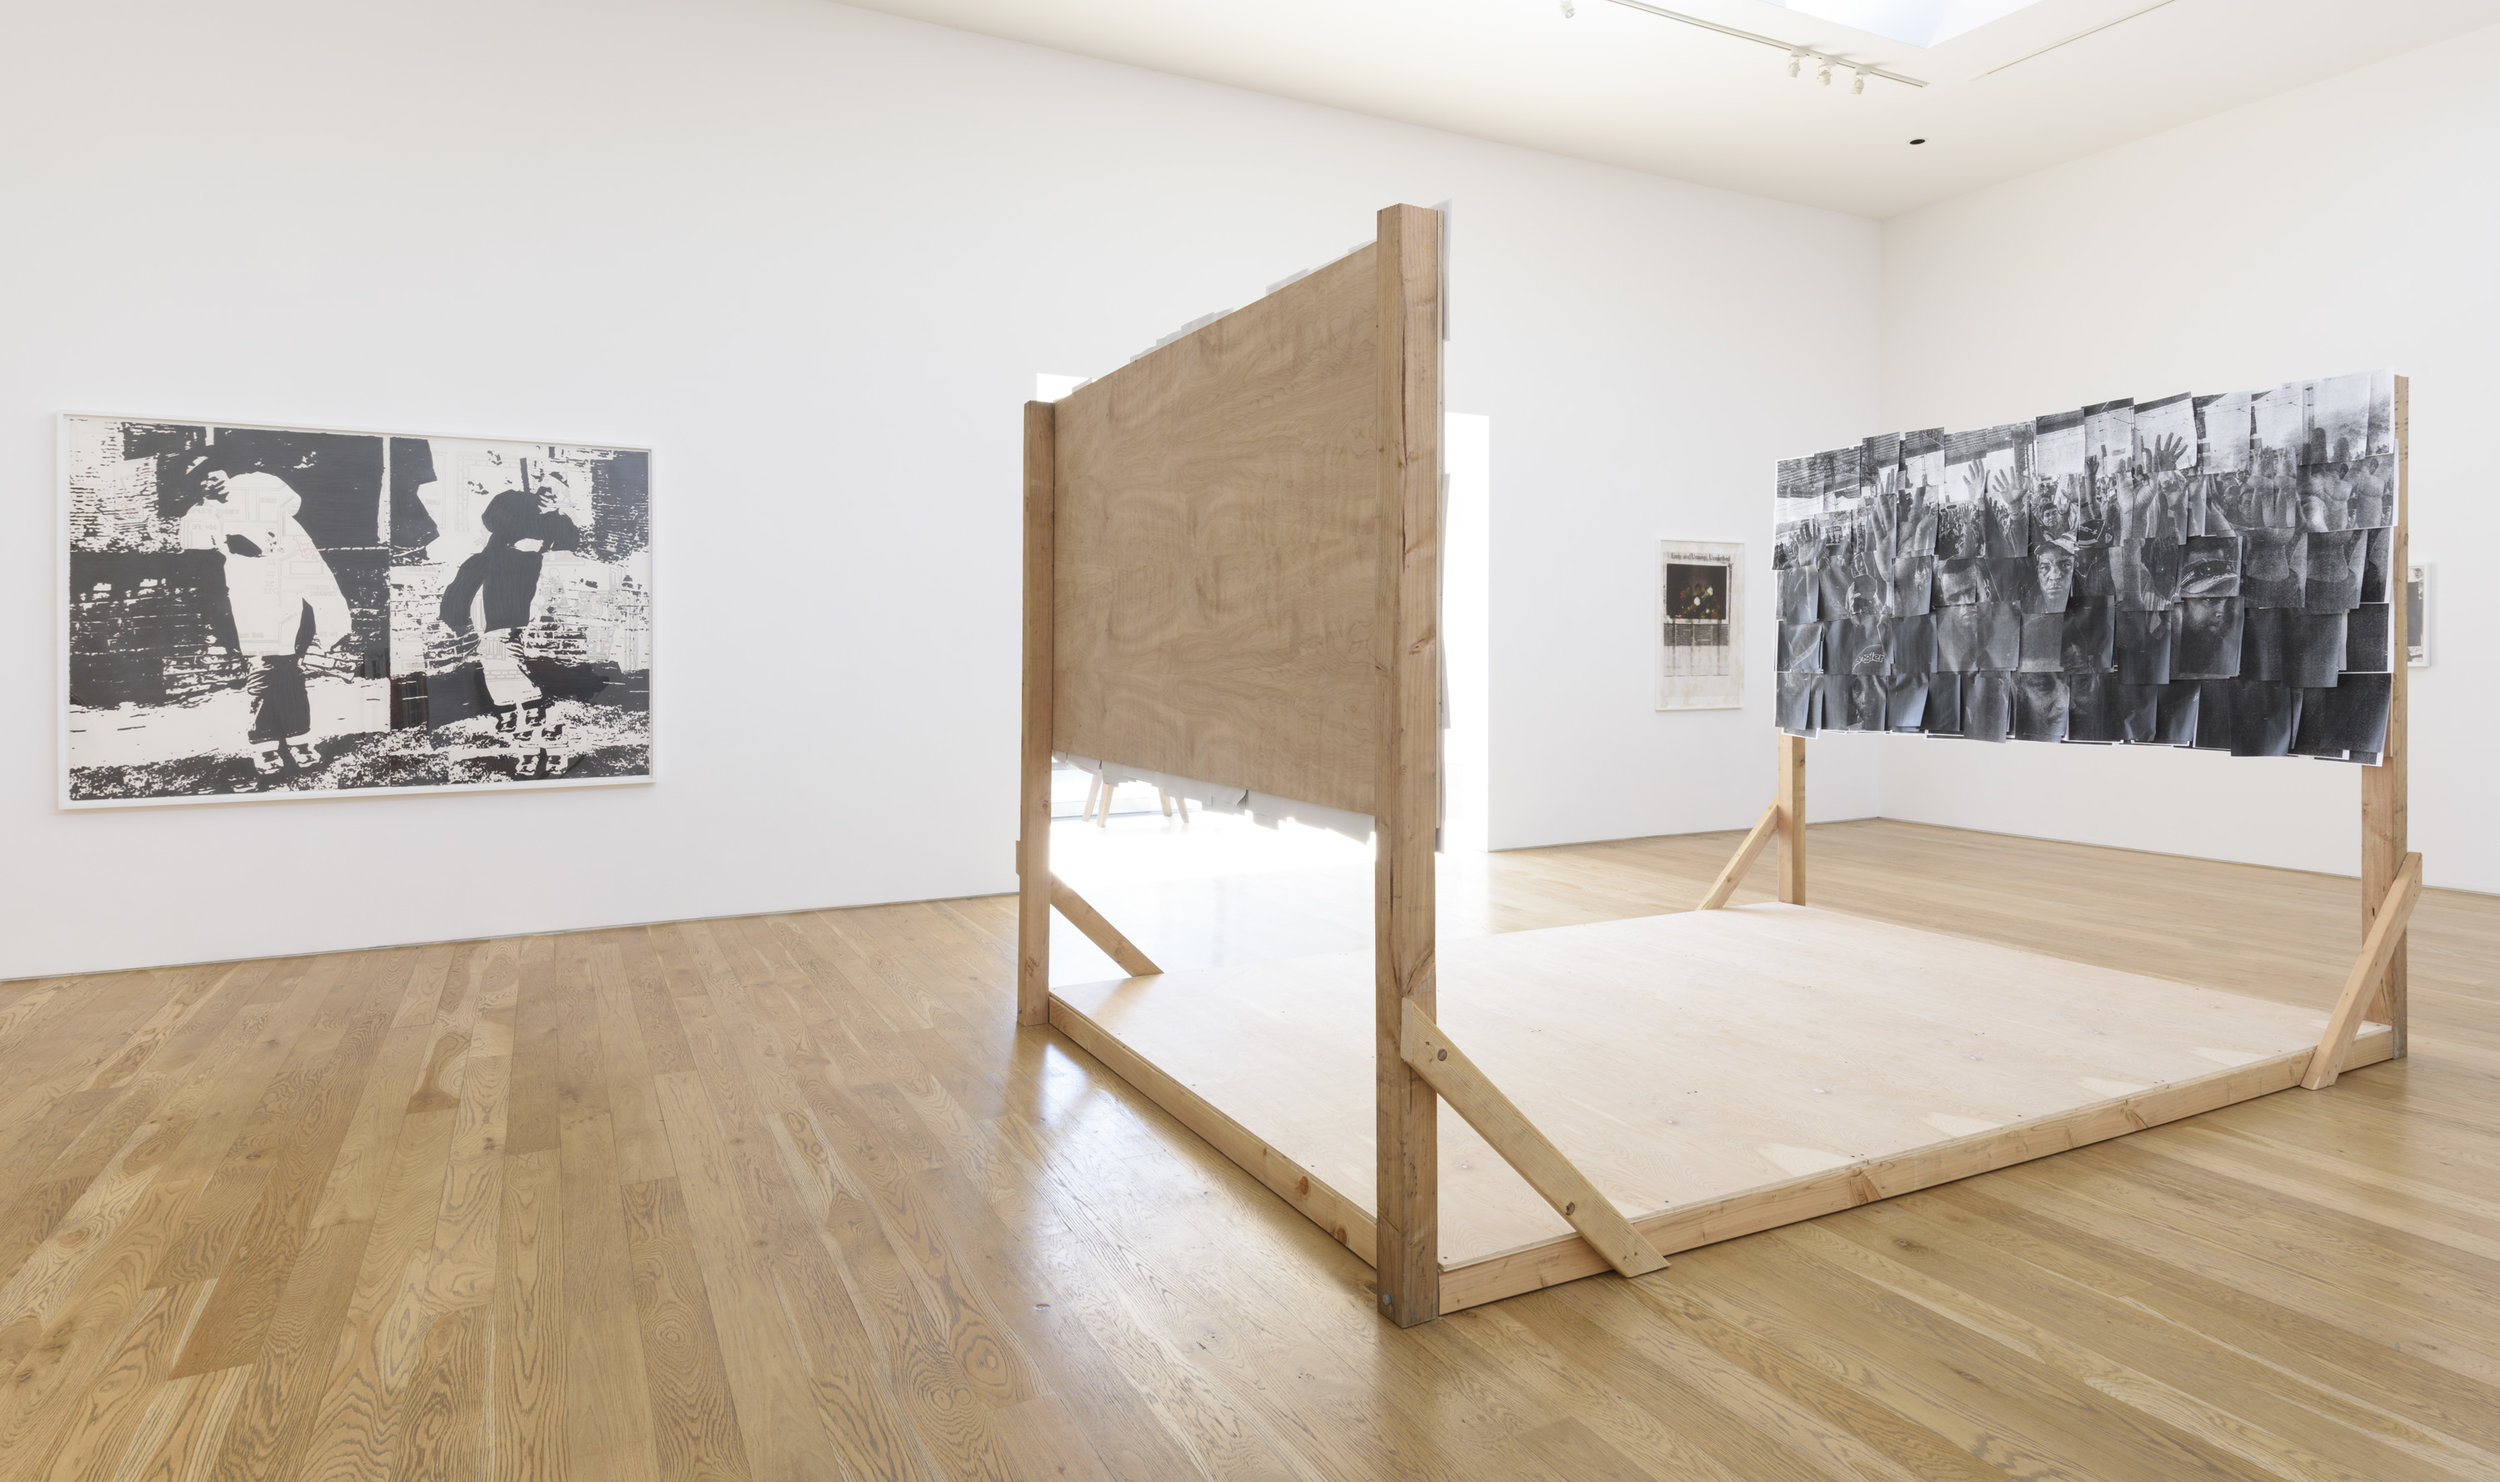 York Chang & Justin Cole  Constituent Parts  Installation View, 2017